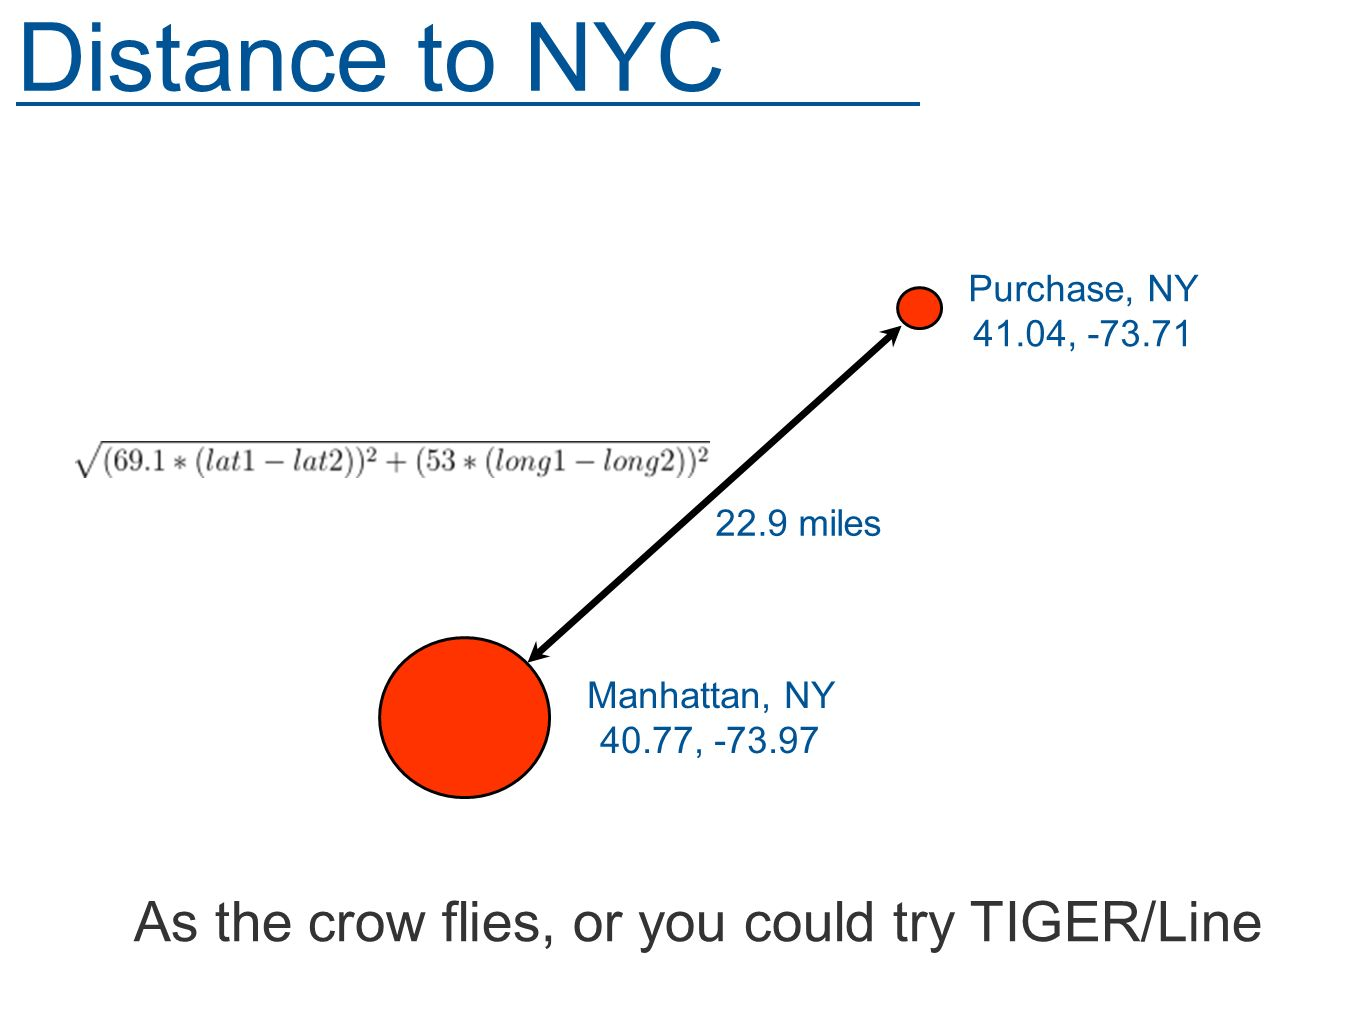 As the crow flies, or you could try TIGER/Line Distance to NYC Purchase, NY 41.04, Manhattan, NY 40.77, miles